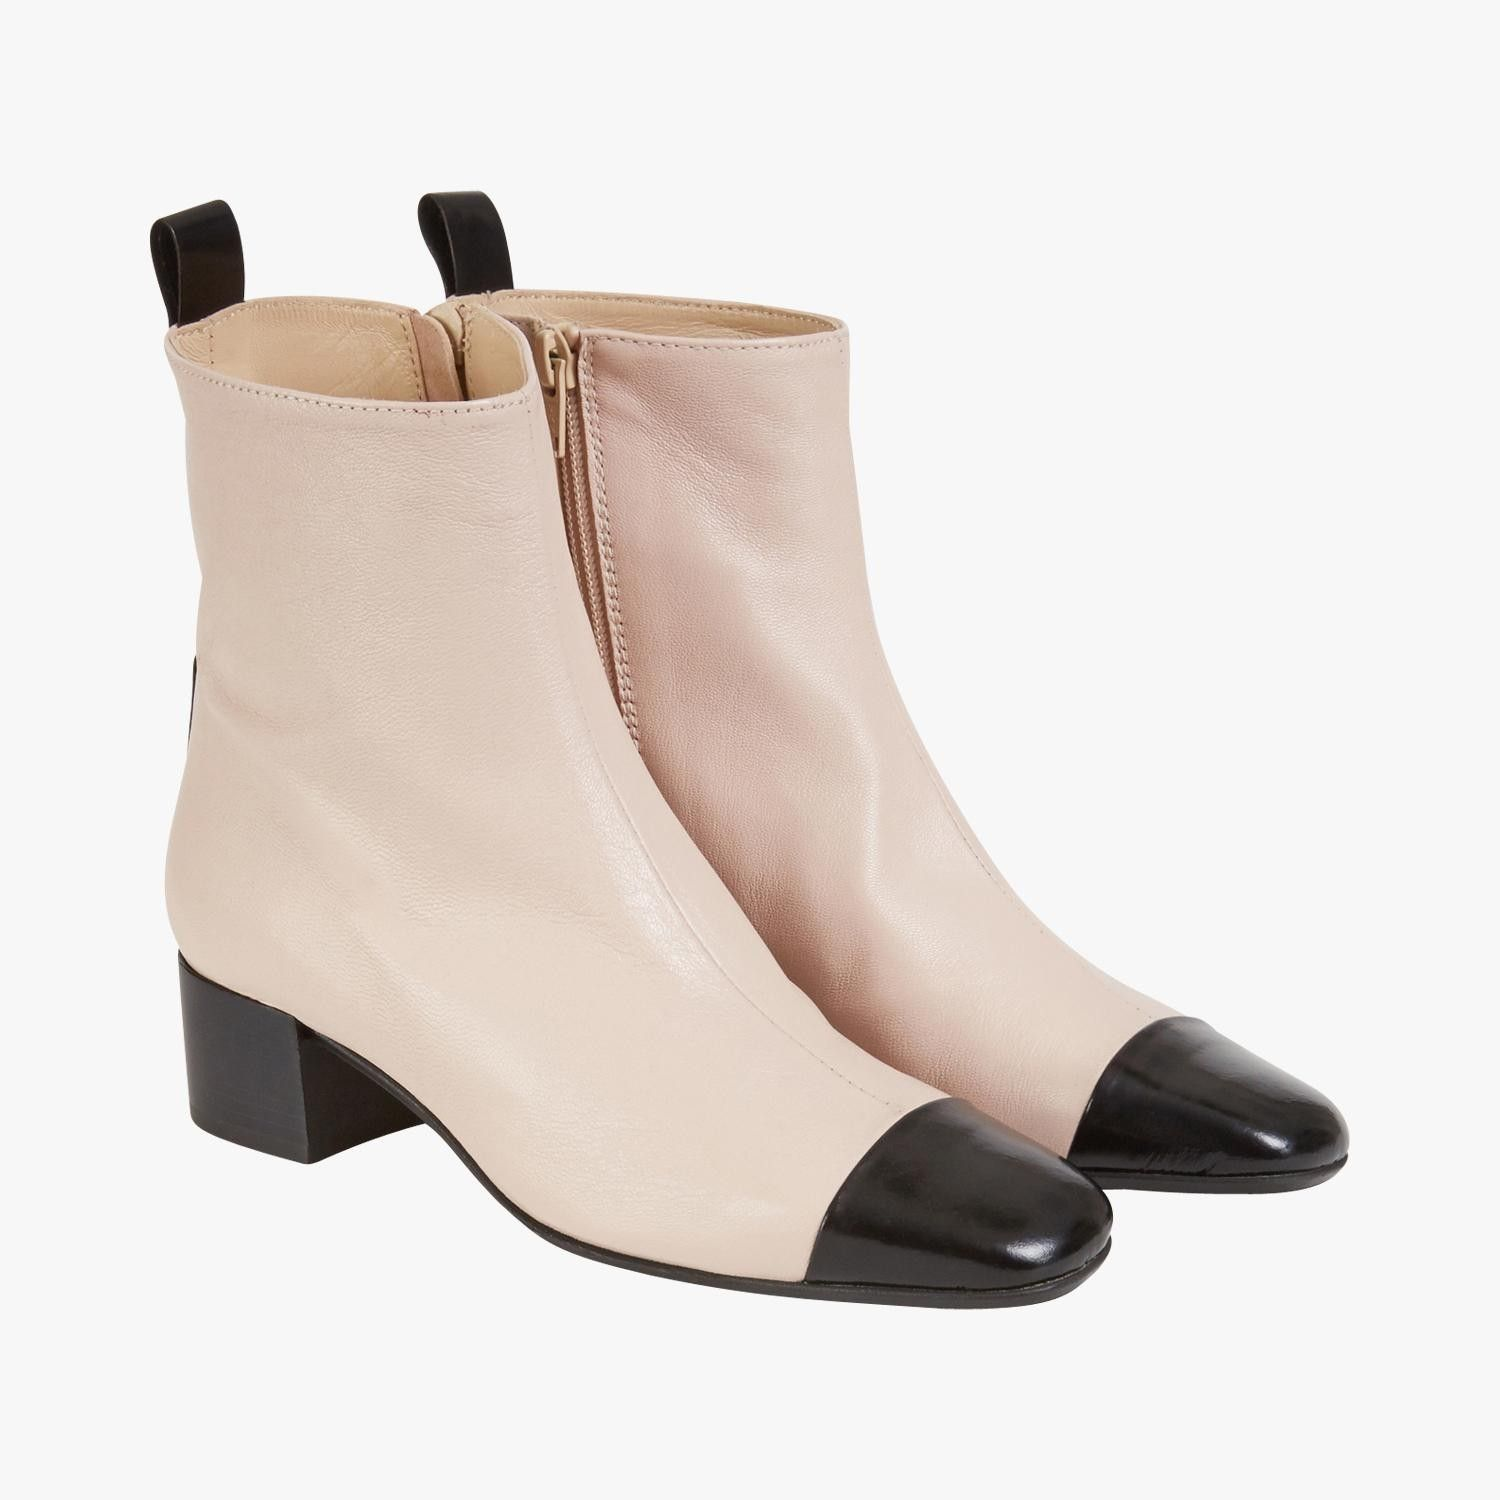 bottines bicolore fini verni - carel #lebonmarche #tendance